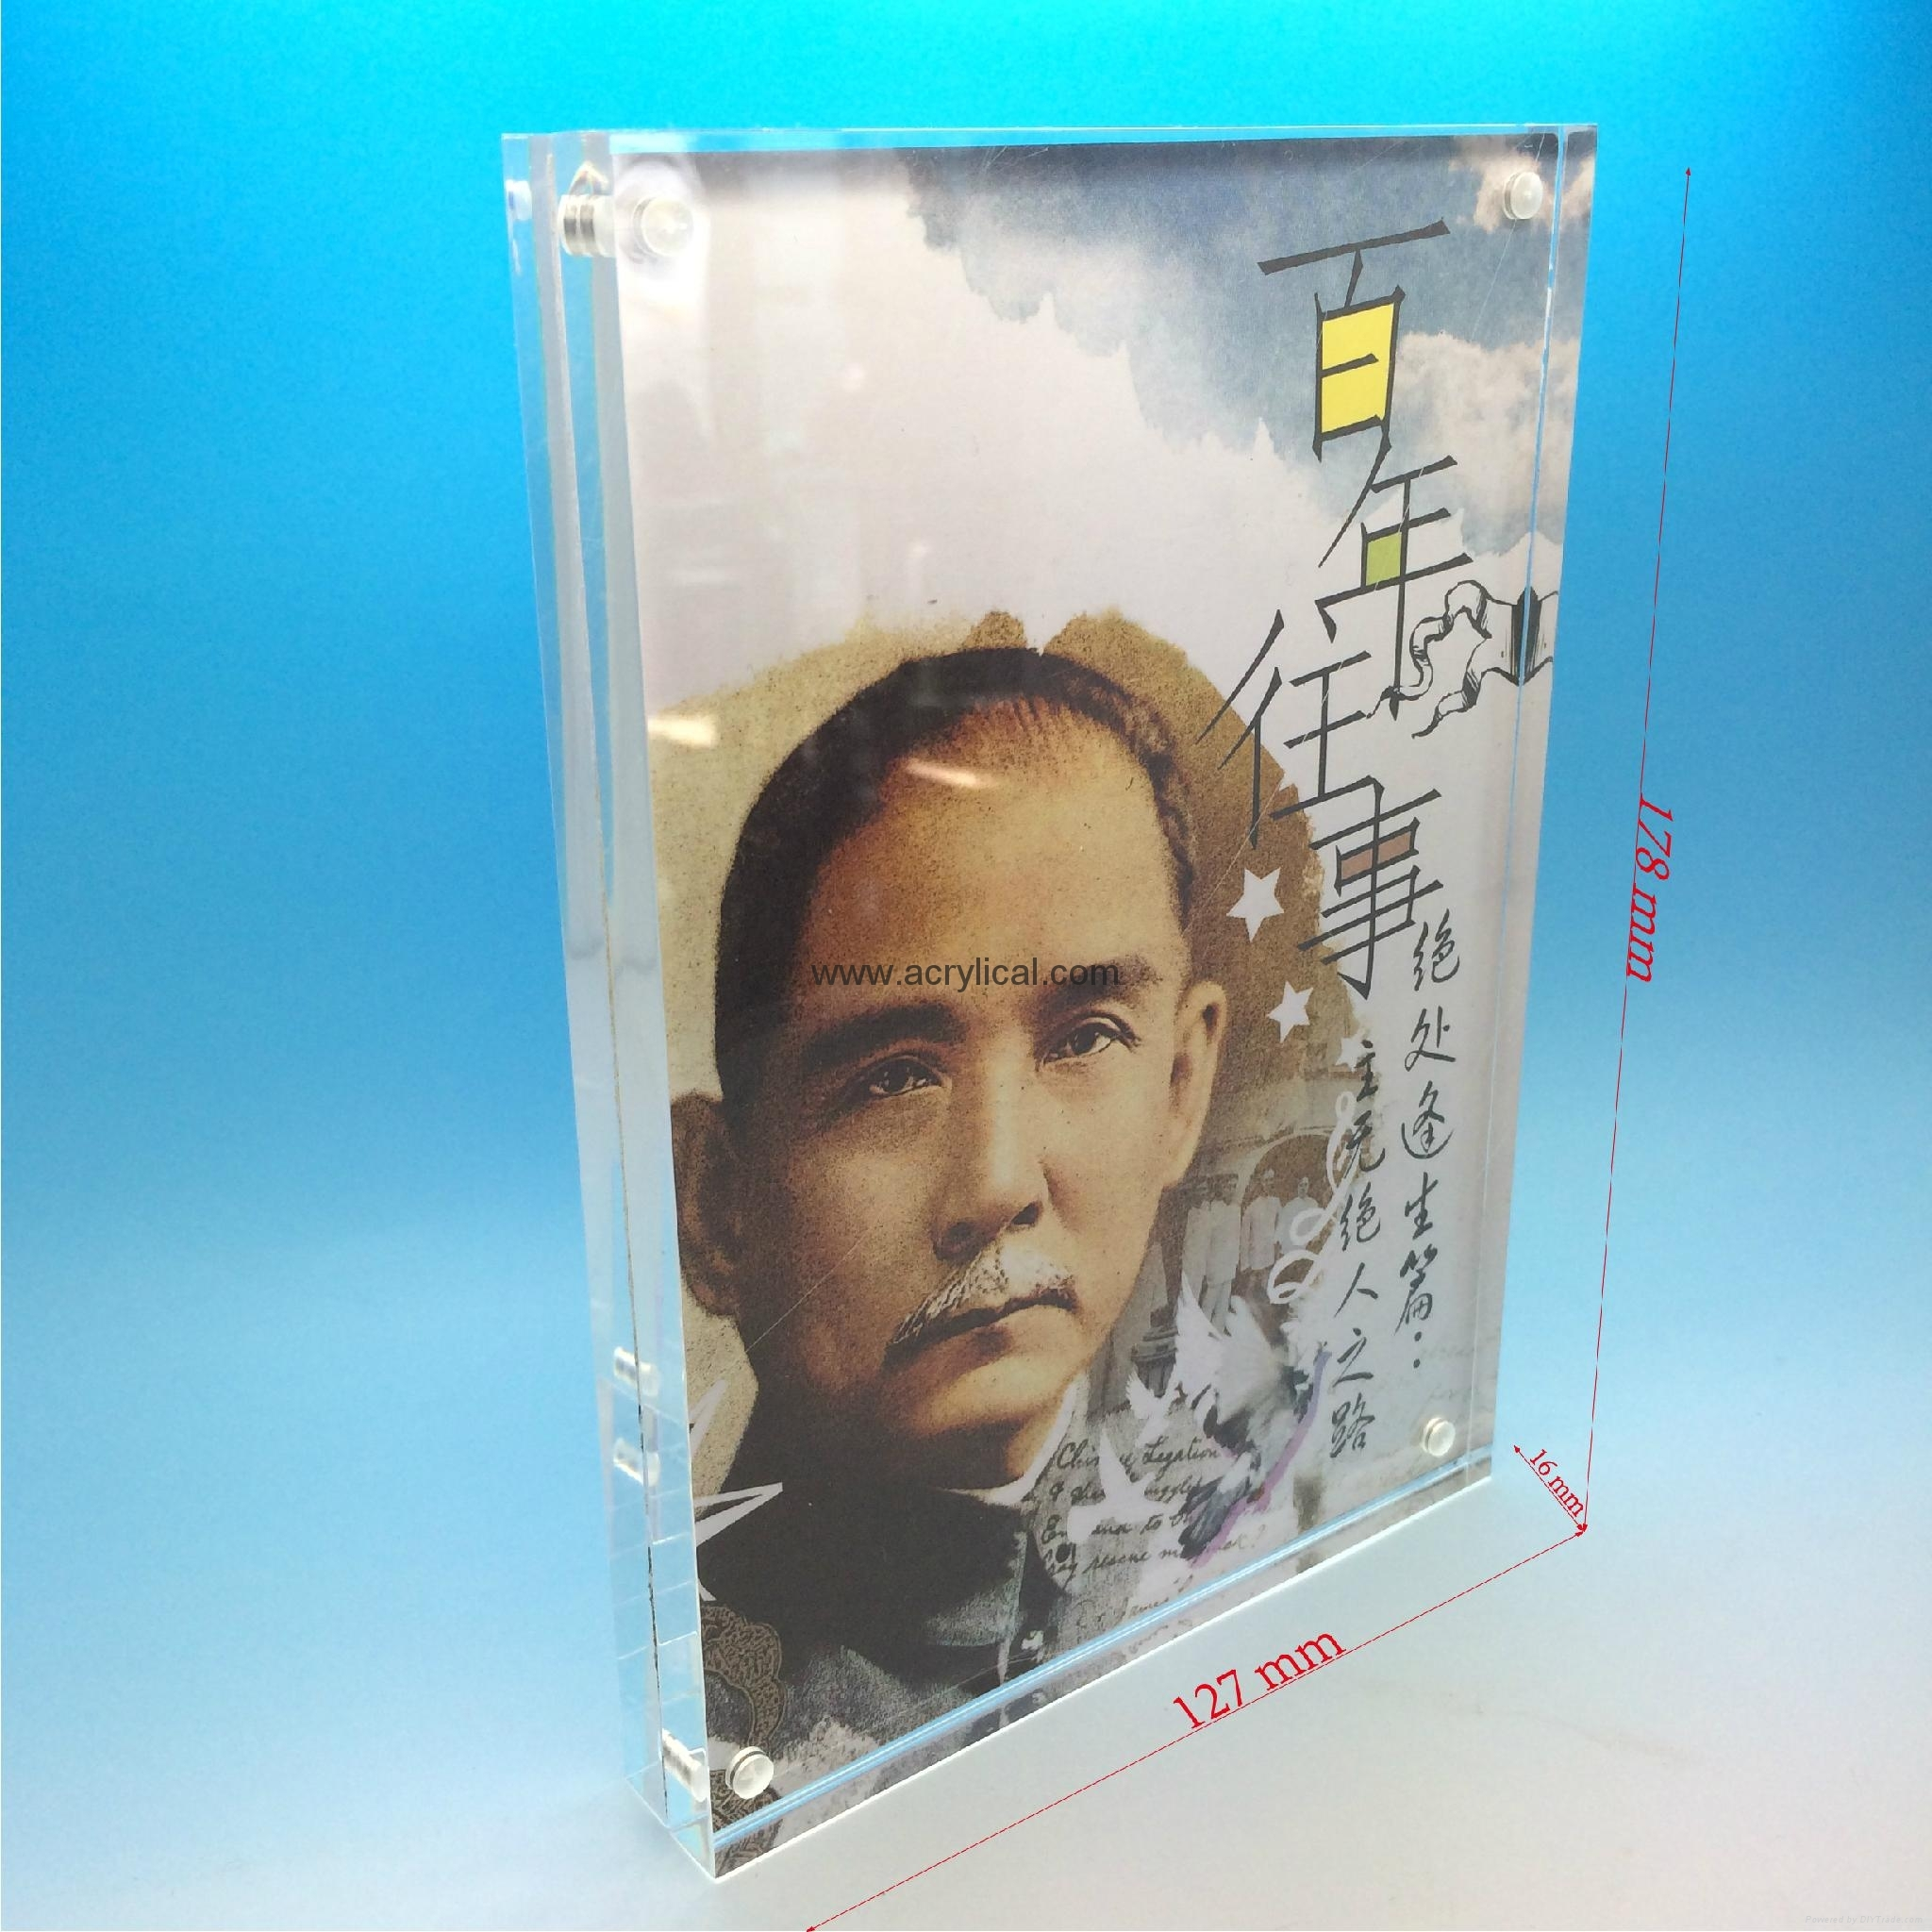 large acrylic cube photo frame,acrylic photo frame,square acrylic photo frame,clear acrylic photo frame cube,mini acrylic photo frame,acrylic magnetic photo frame,clear acrylic magnetic photo frame,,The Heavy Magnetic Picture Frame preserves your photo between heavy sheets of clear acrylic that are held together by magnetic corners. Can be used vertically or horizontally and available in three sizes:2-1/2 X 3-1/2 X 3/4, 3 1/2'', 3 1/2'' x 5'', 4'' x 6'', 5'' x 7'',Acrylic Photo Frame,photo frame with magnet,Acrylic display stands, Acrylic sign letter ,Acrylic photo Frame,Literature displays, Brochure holders, Acrylic sign holder,Menu stand,Promotion gifts,Cell phone display stands, Acrylic Easel Book Holder Rack,Acrylic display case/Box ,Diecast car display case ,Trophies, Artistic ,POP display stands,Acrylic coaster,Jewelry display stand,dome display, eyewear display stands,LED lighting  Box,Poster display,LED display stands,Watch display stand,Counter top display stand,POP stand,POP display,Floor Standing Unit ,PETG,PVC,Vacuum forming,Window display stand,Acrylic Award,Cosmetic display,metal display rack, acrylic display rack.wooden display rack,retail shop display stand